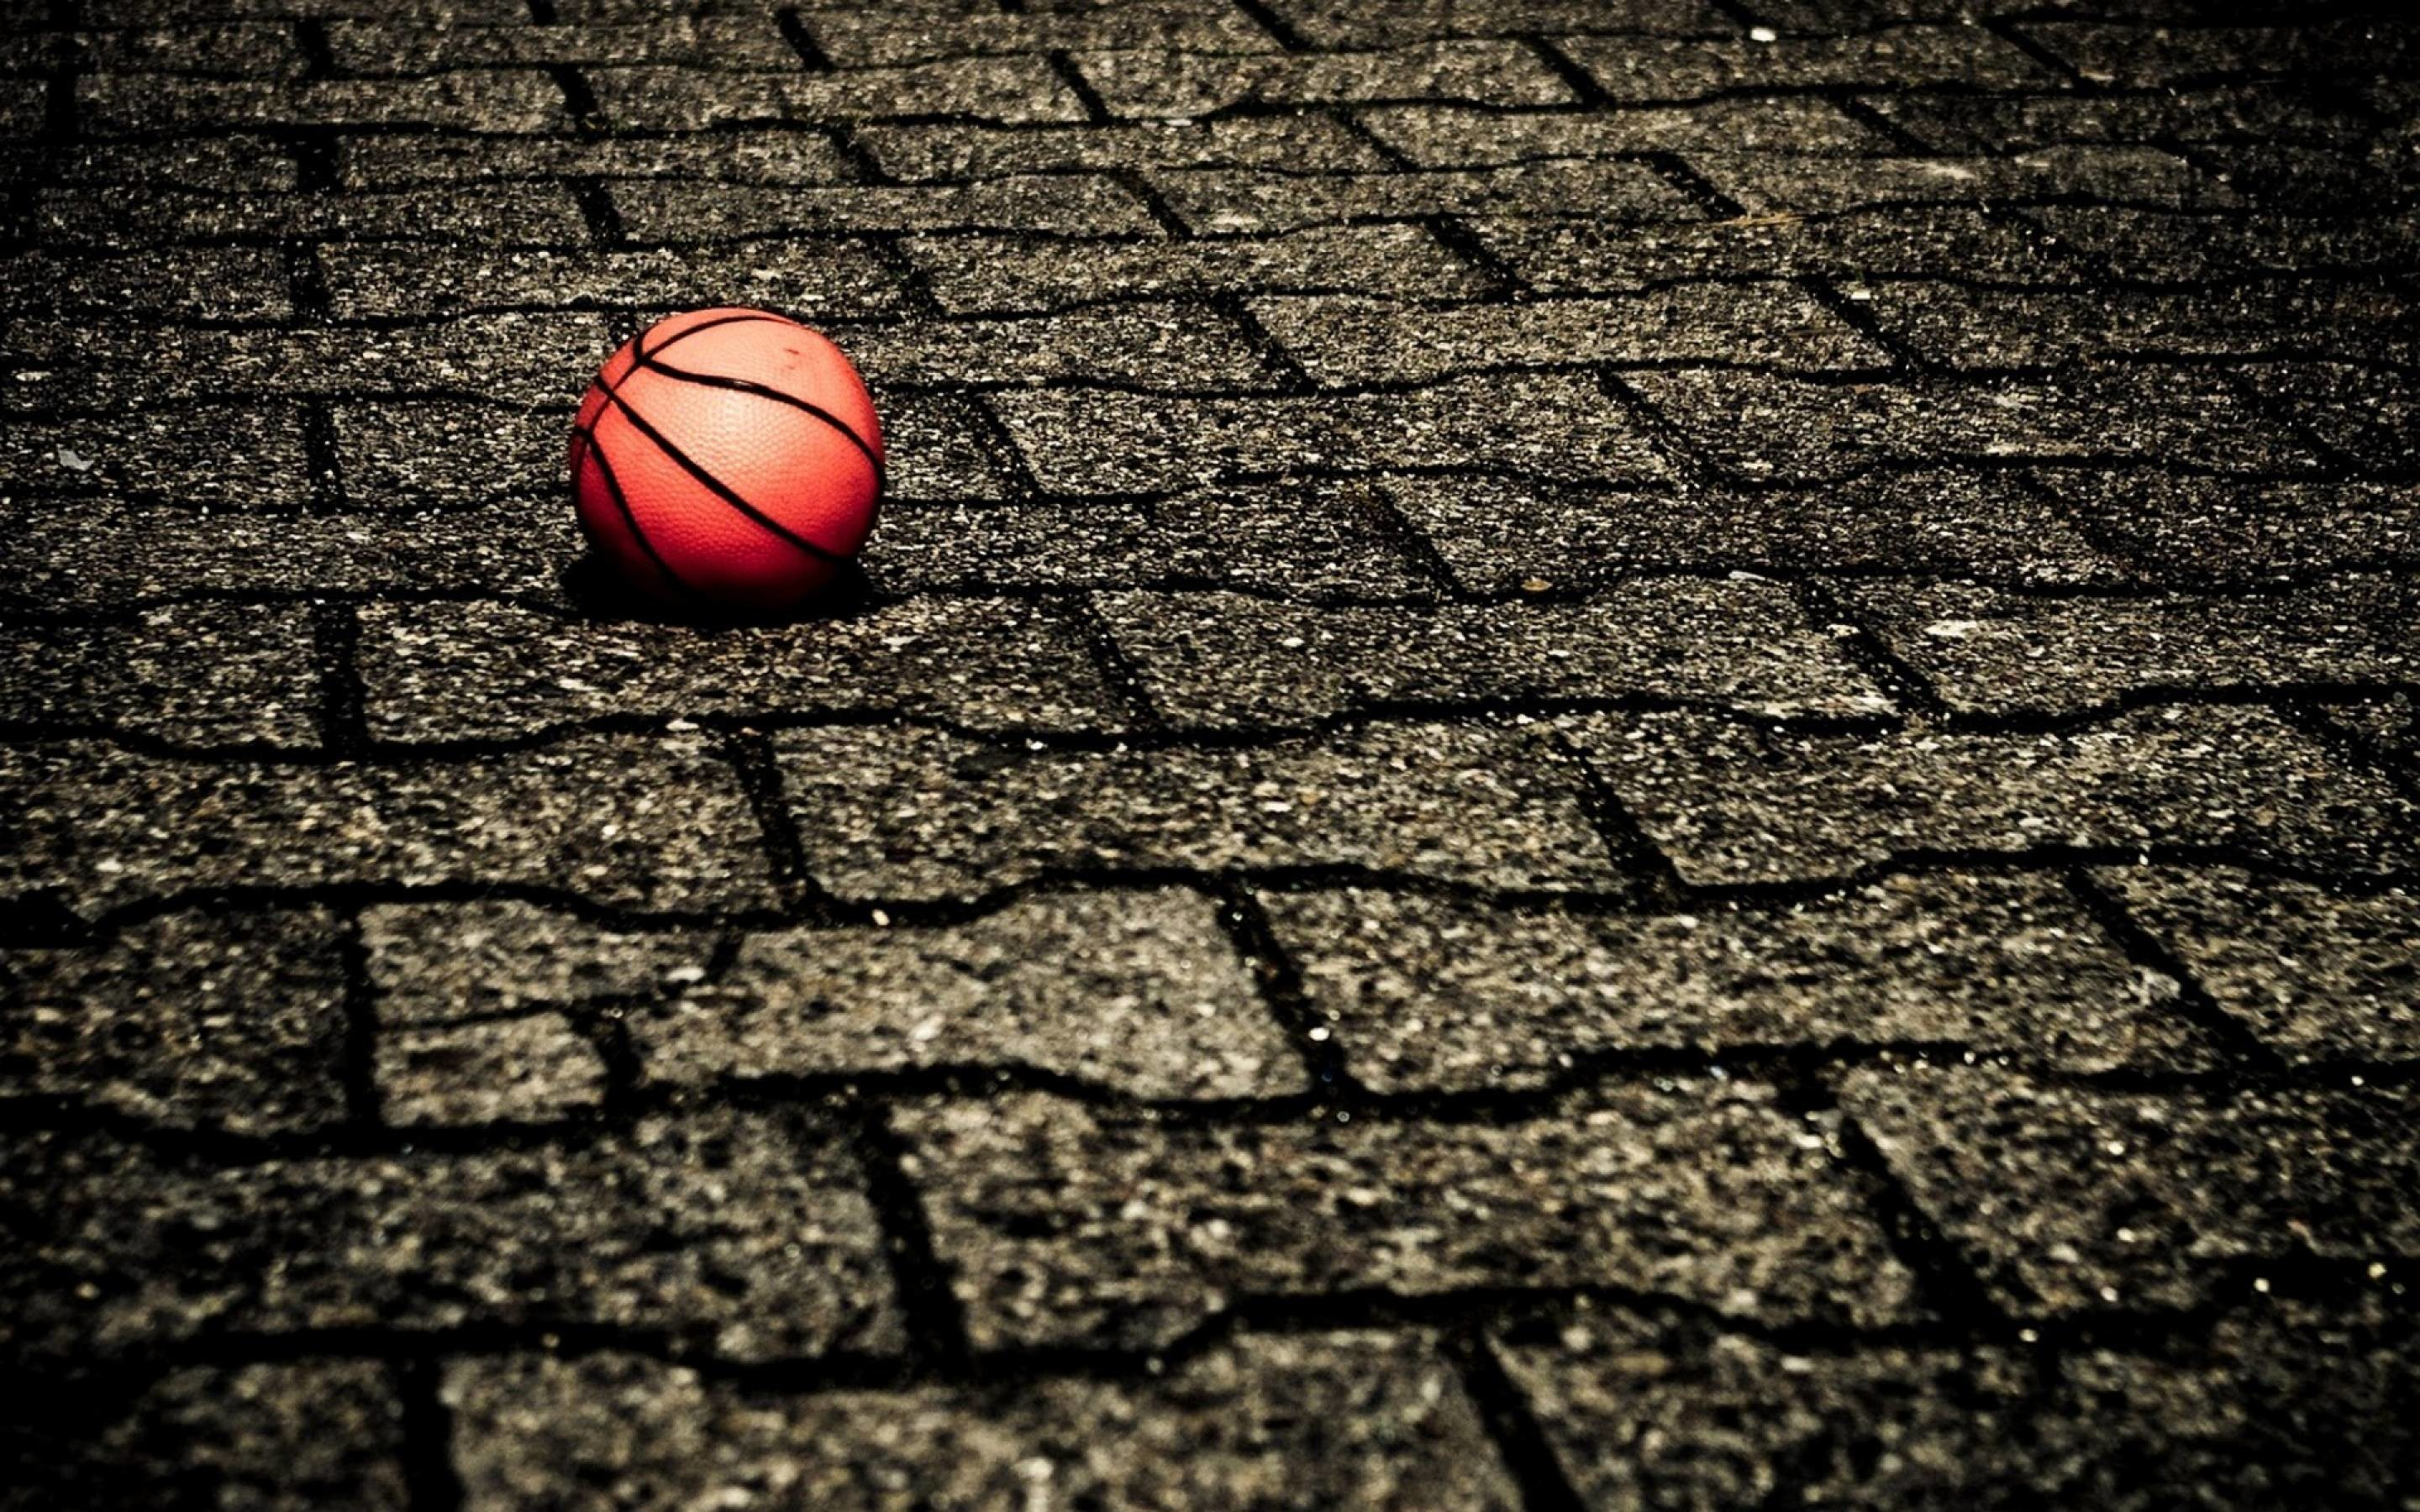 Hd Wallpapers Basketball 73 Images